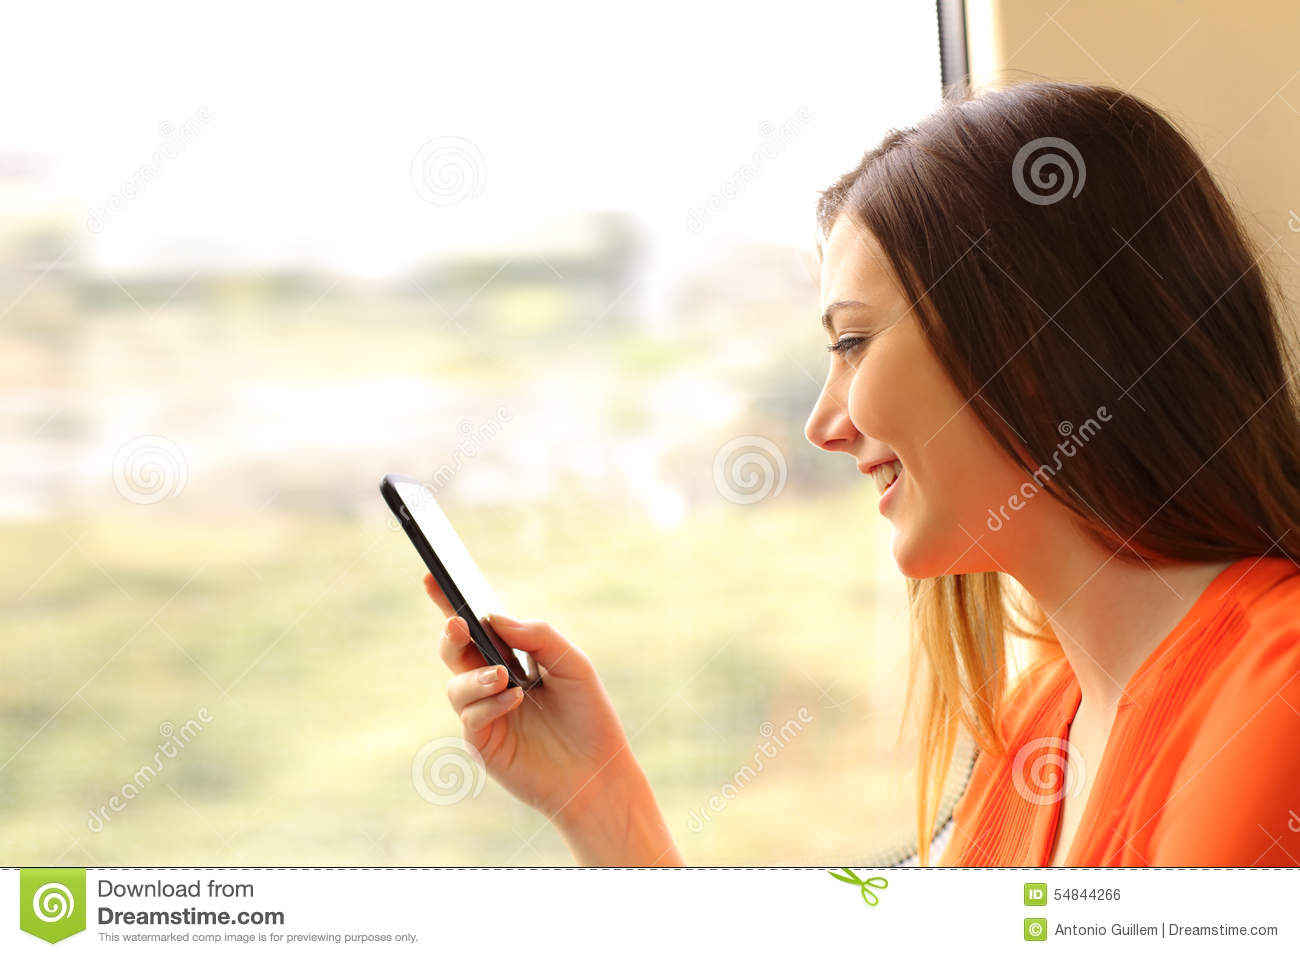 Download Passenger Using A Mobile Phone In A Train Stock Photo - Image of mobile, lady: 54844266